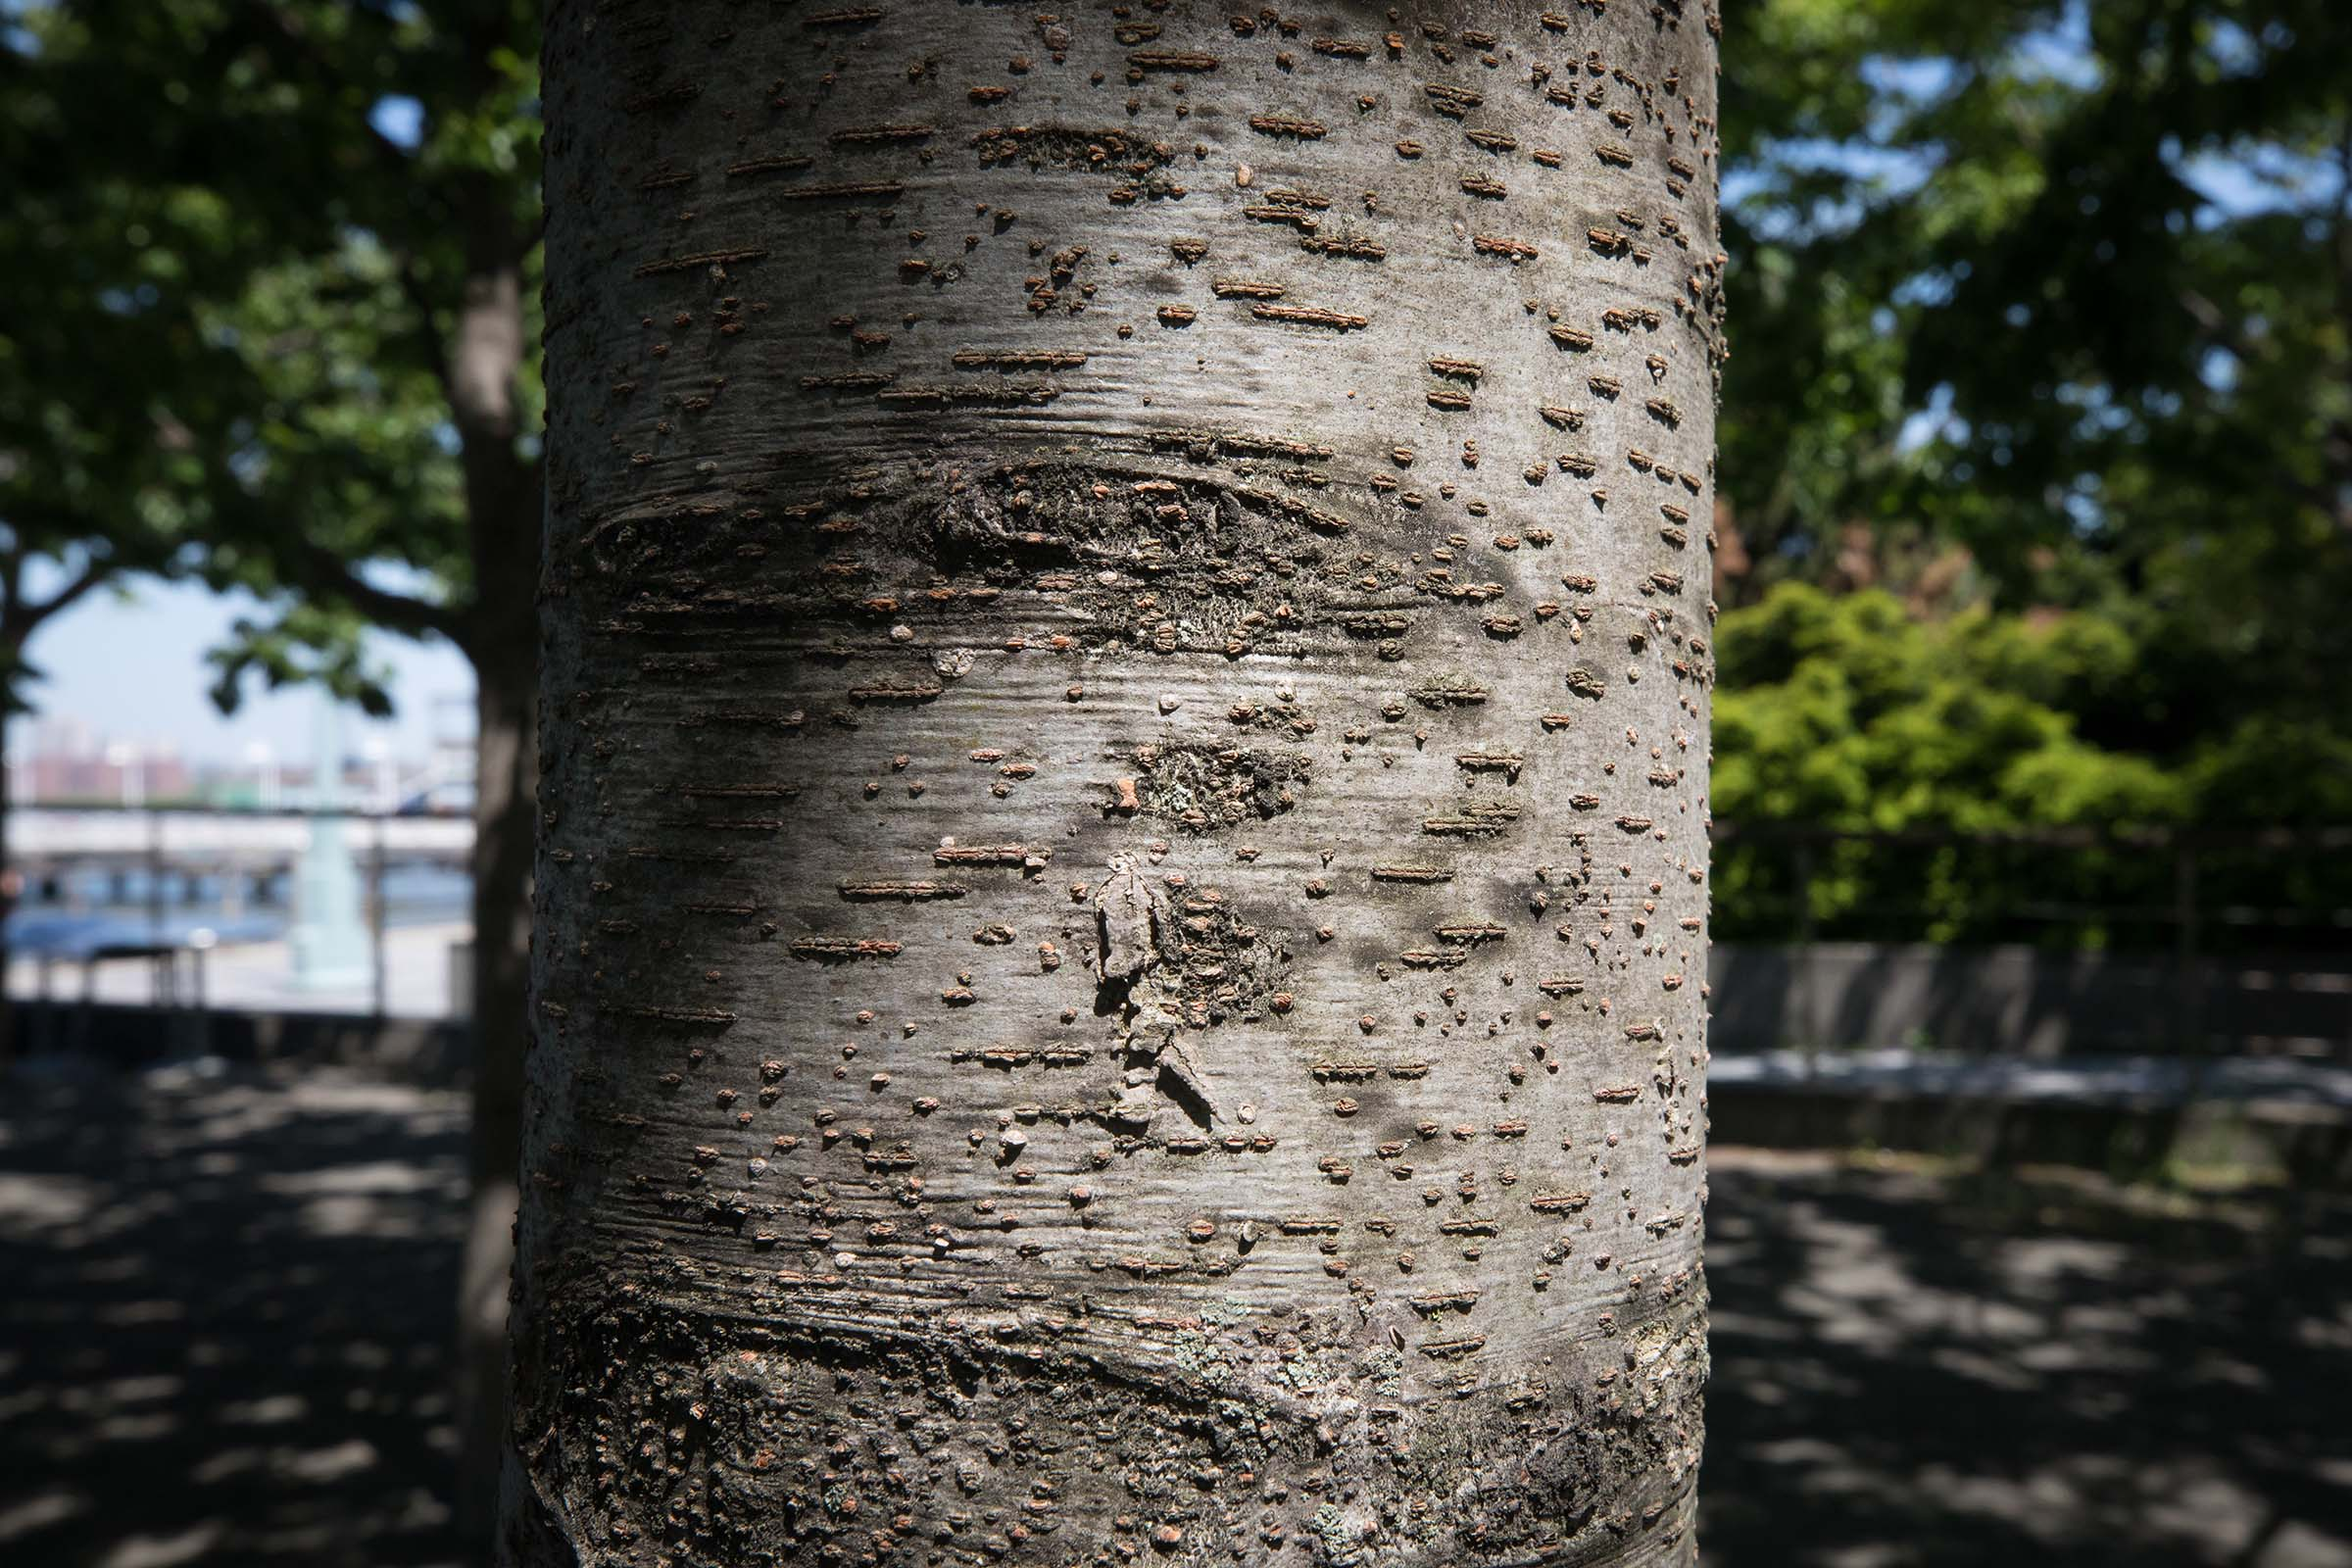 The bark on the trunk of the Japanese Zelcova trees are white and grey with spots